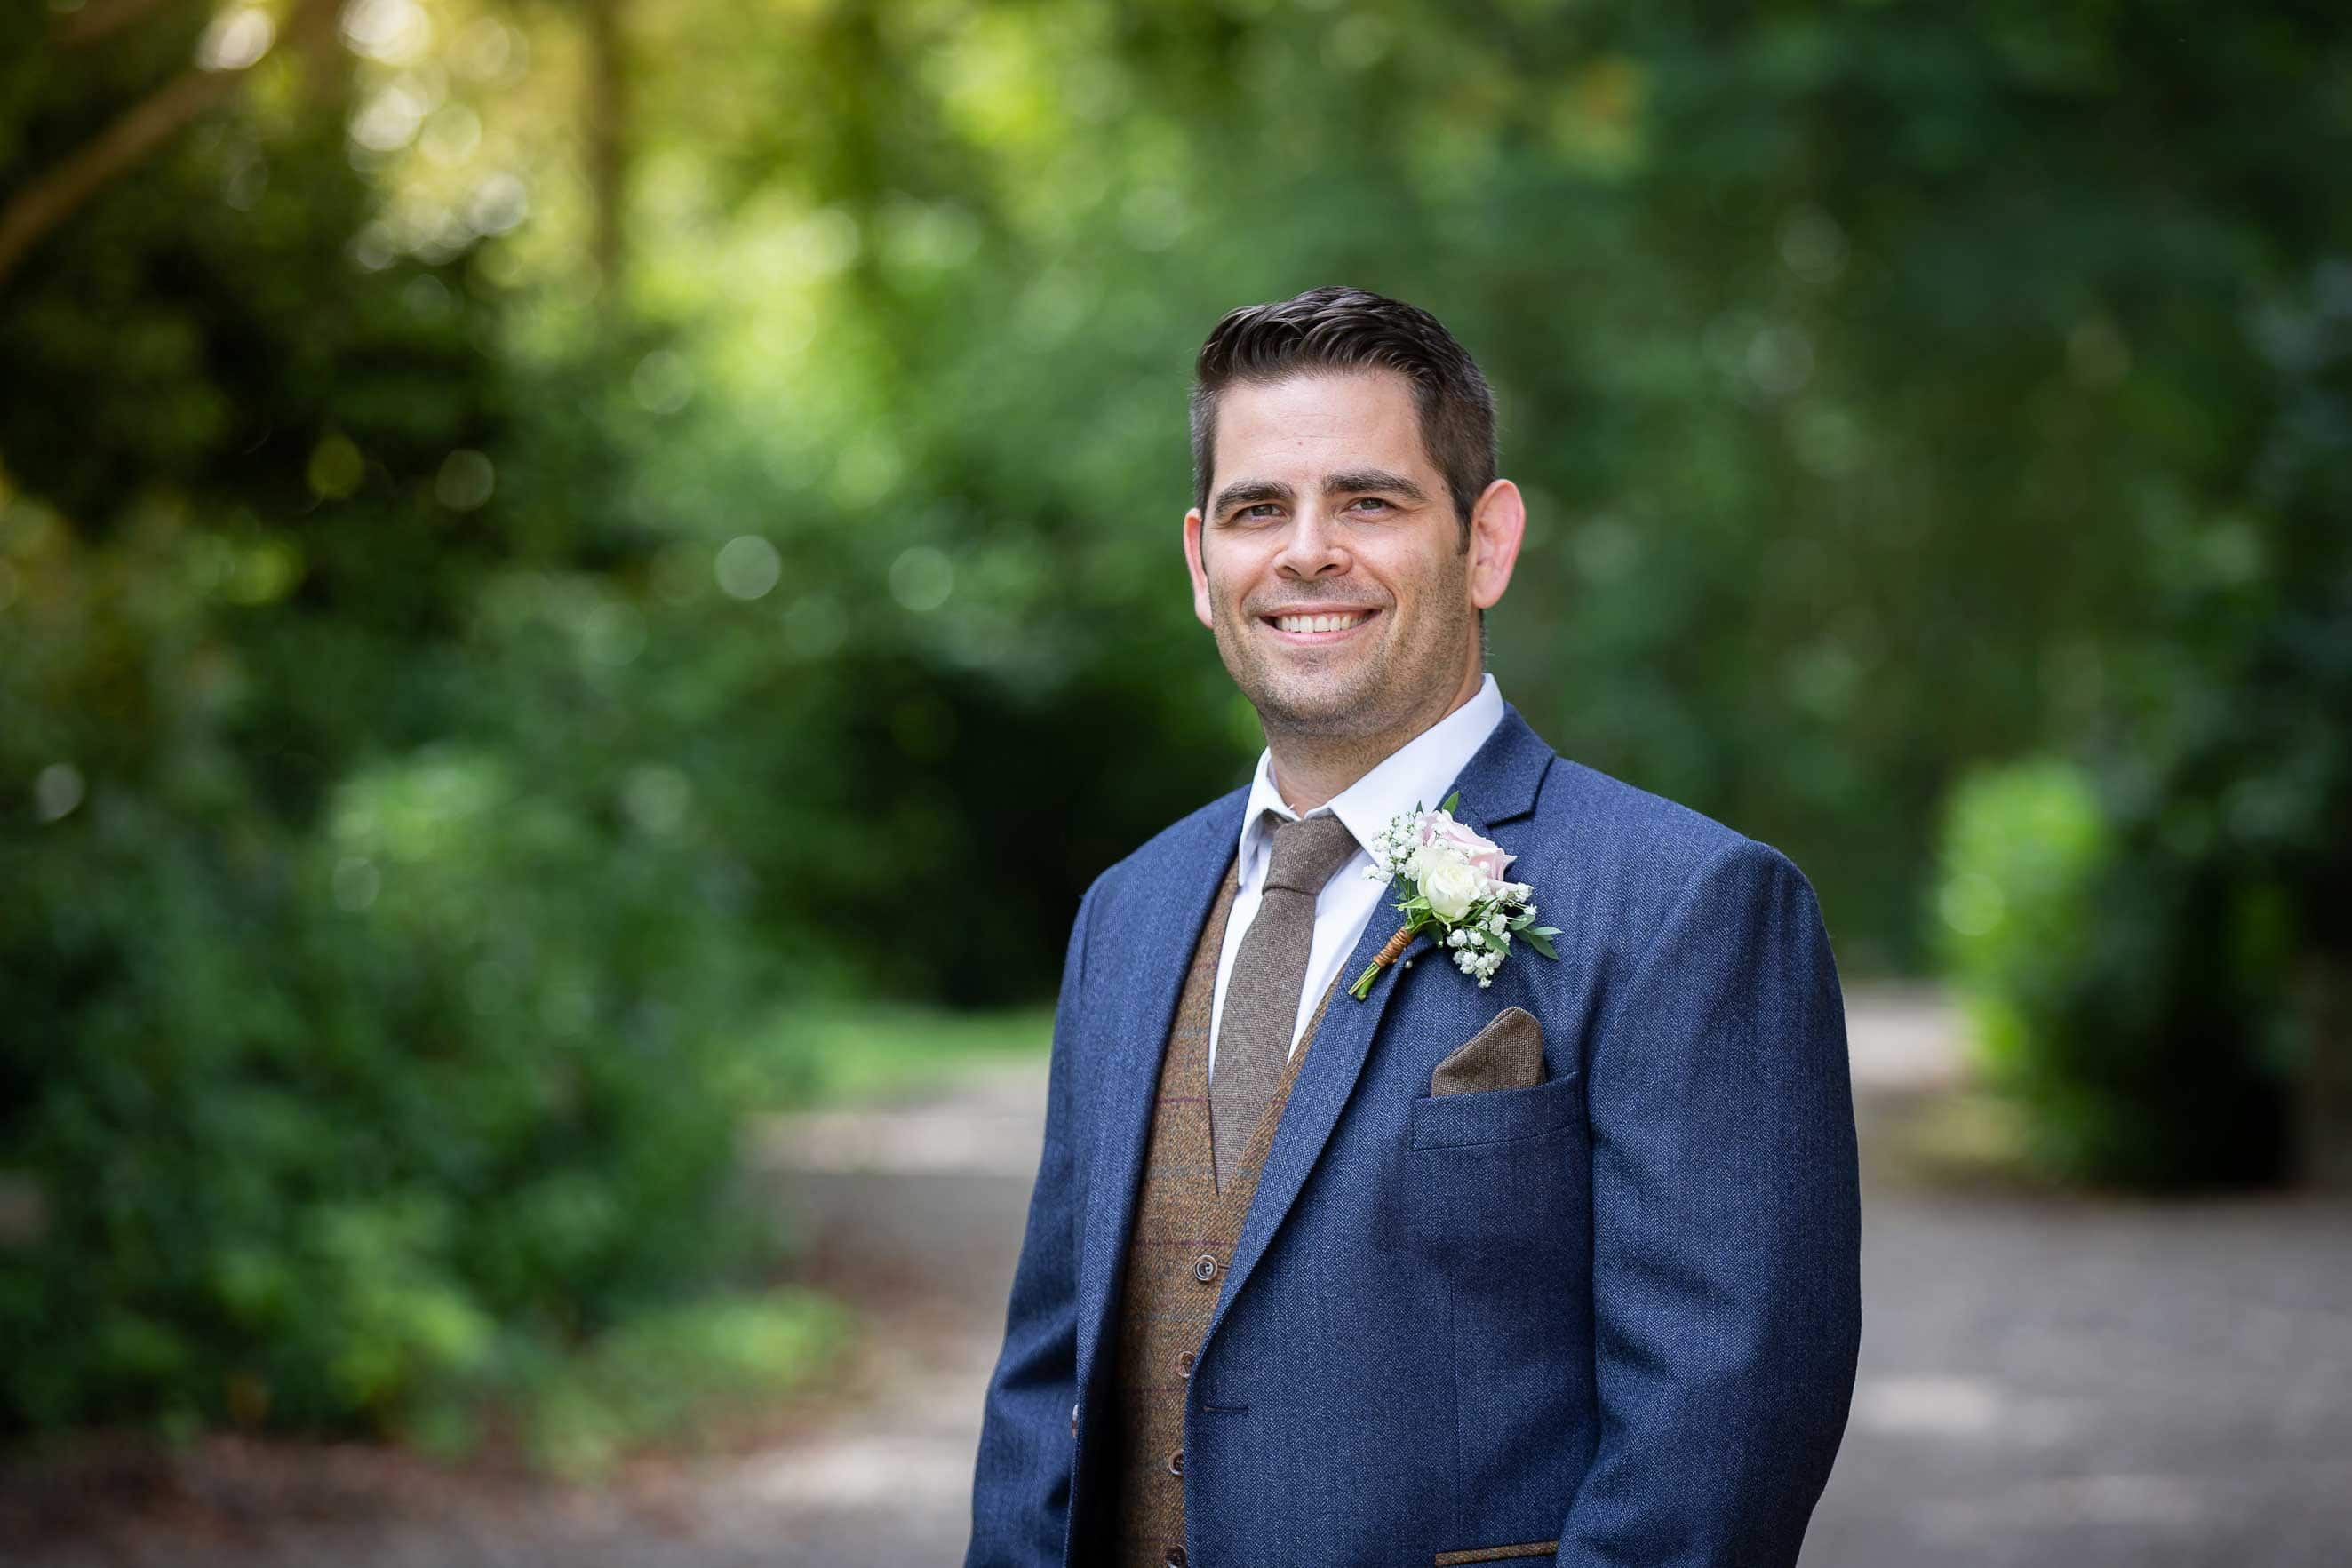 Groom at Ellingham hall